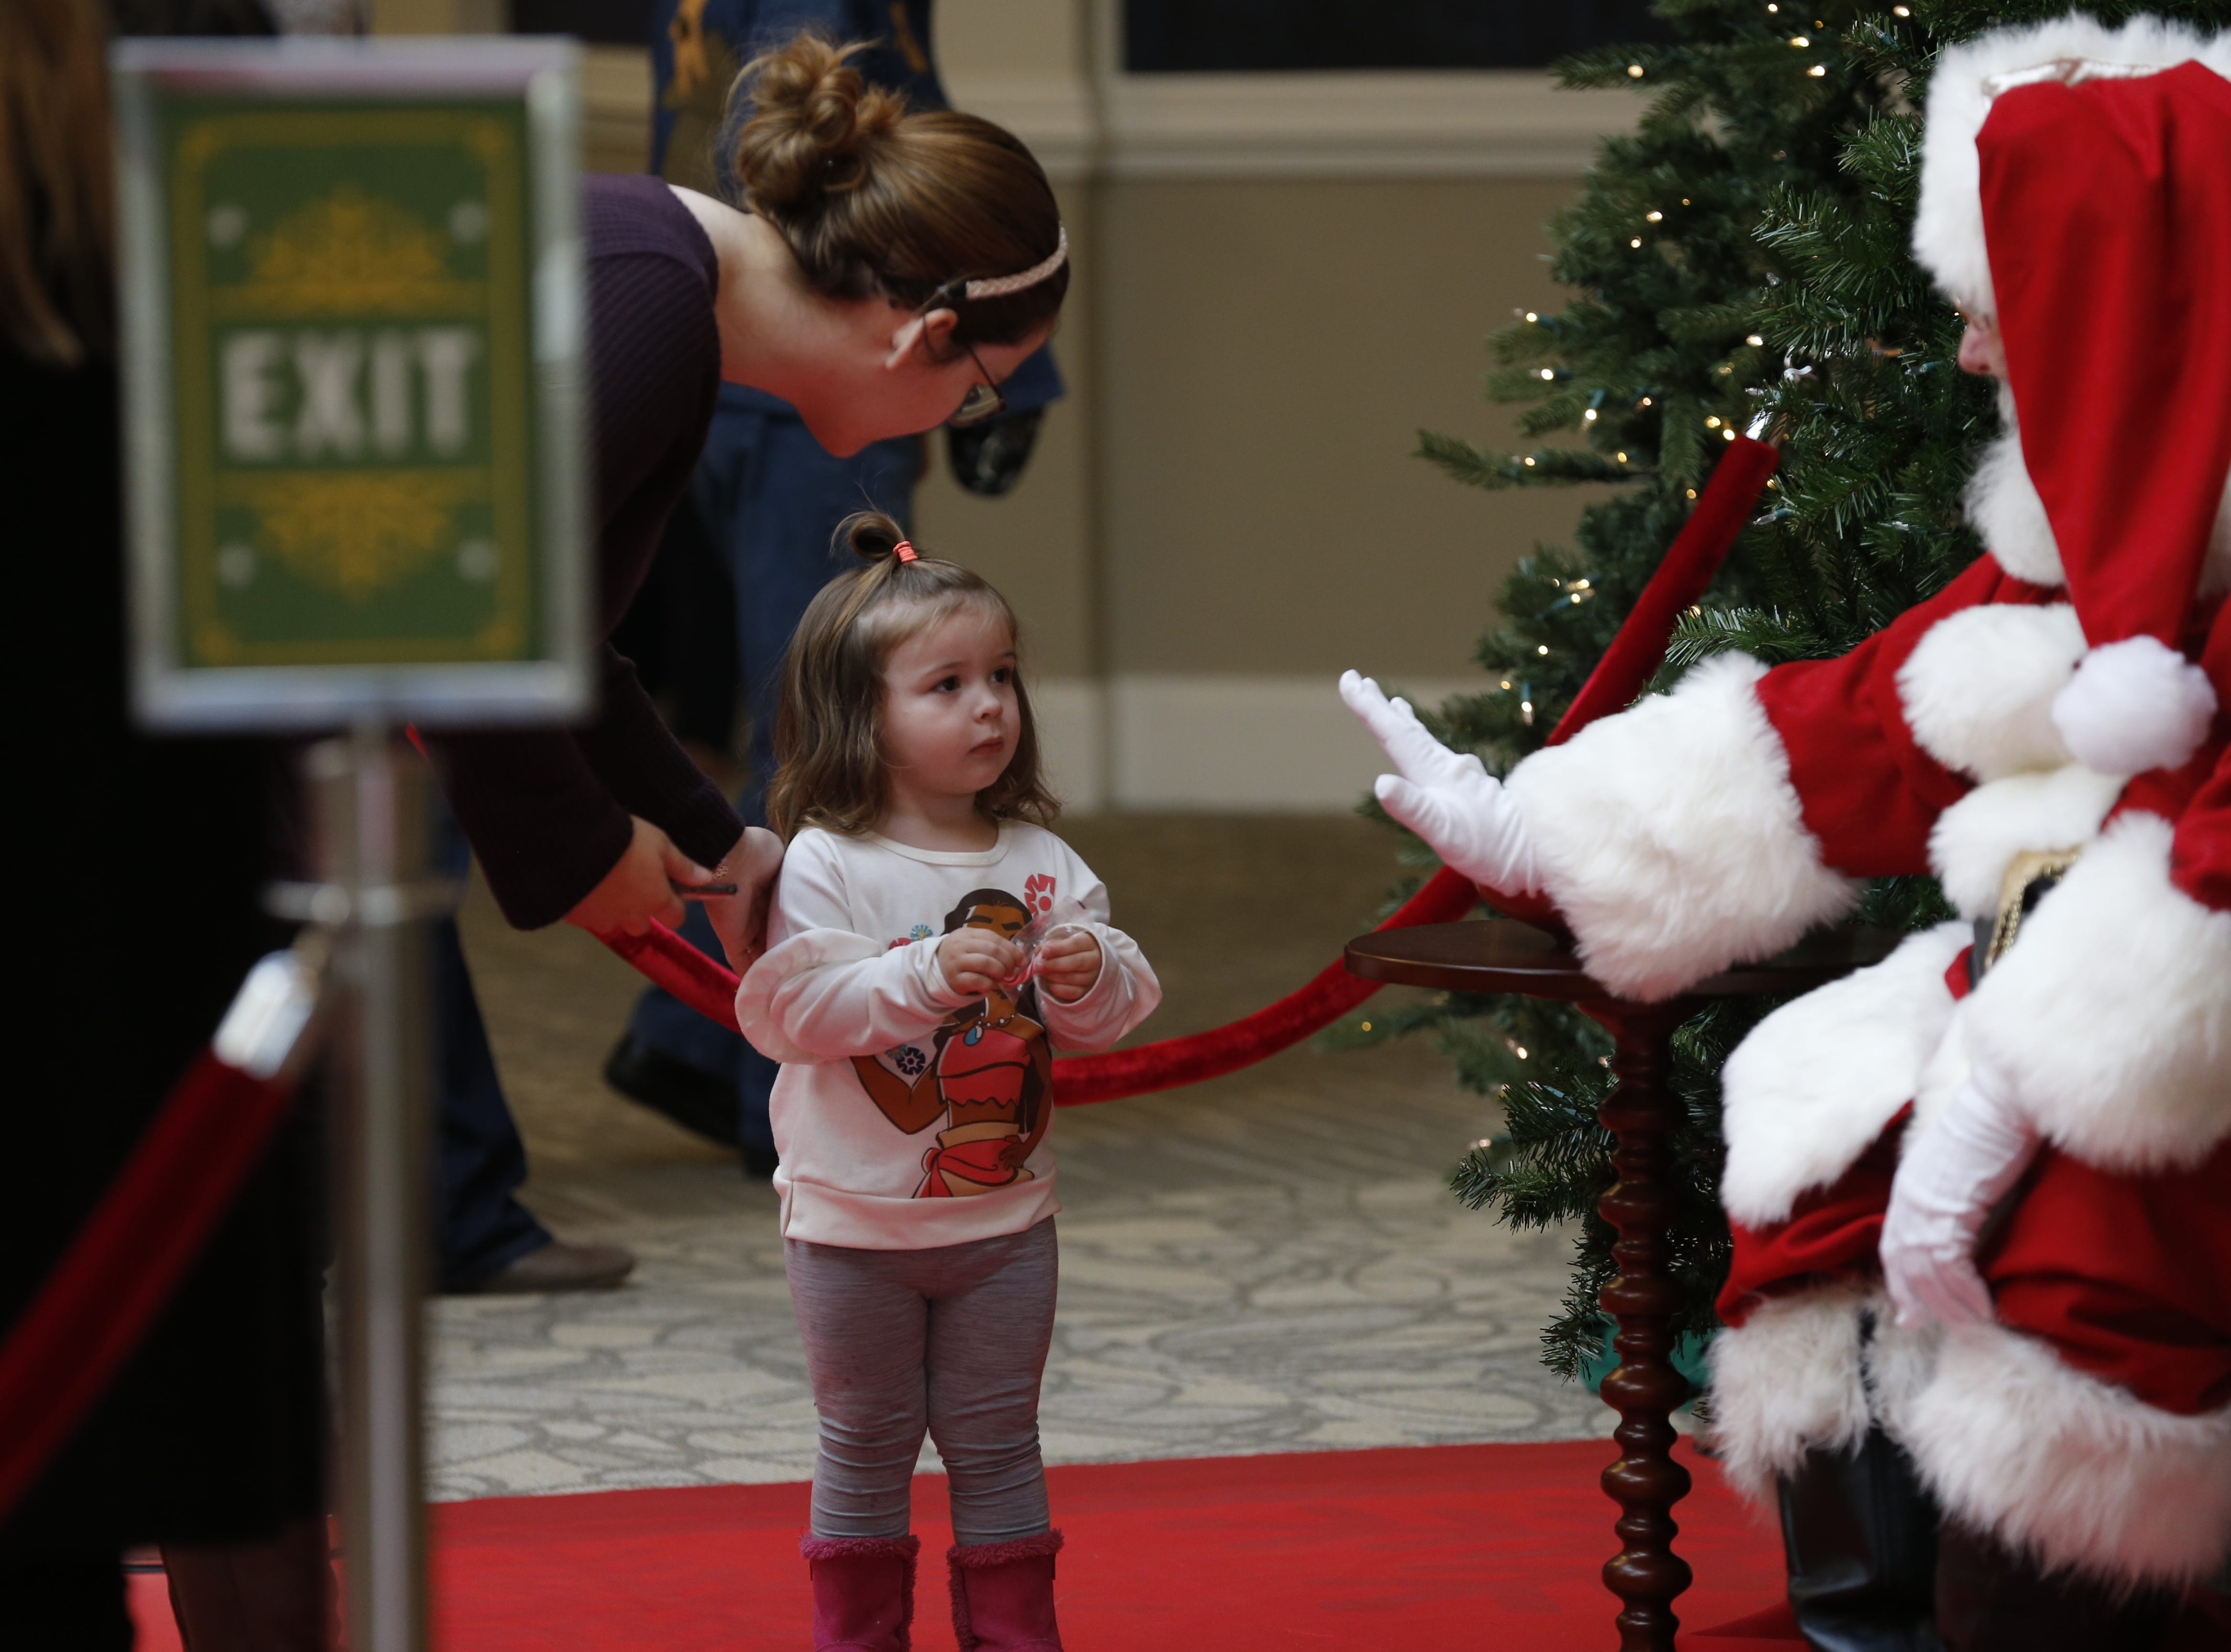 Santa Clause greets one of the first kids to come see him at the new Santa's Village area at the Richmond Mall on Friday, Nov. 23, 2018.